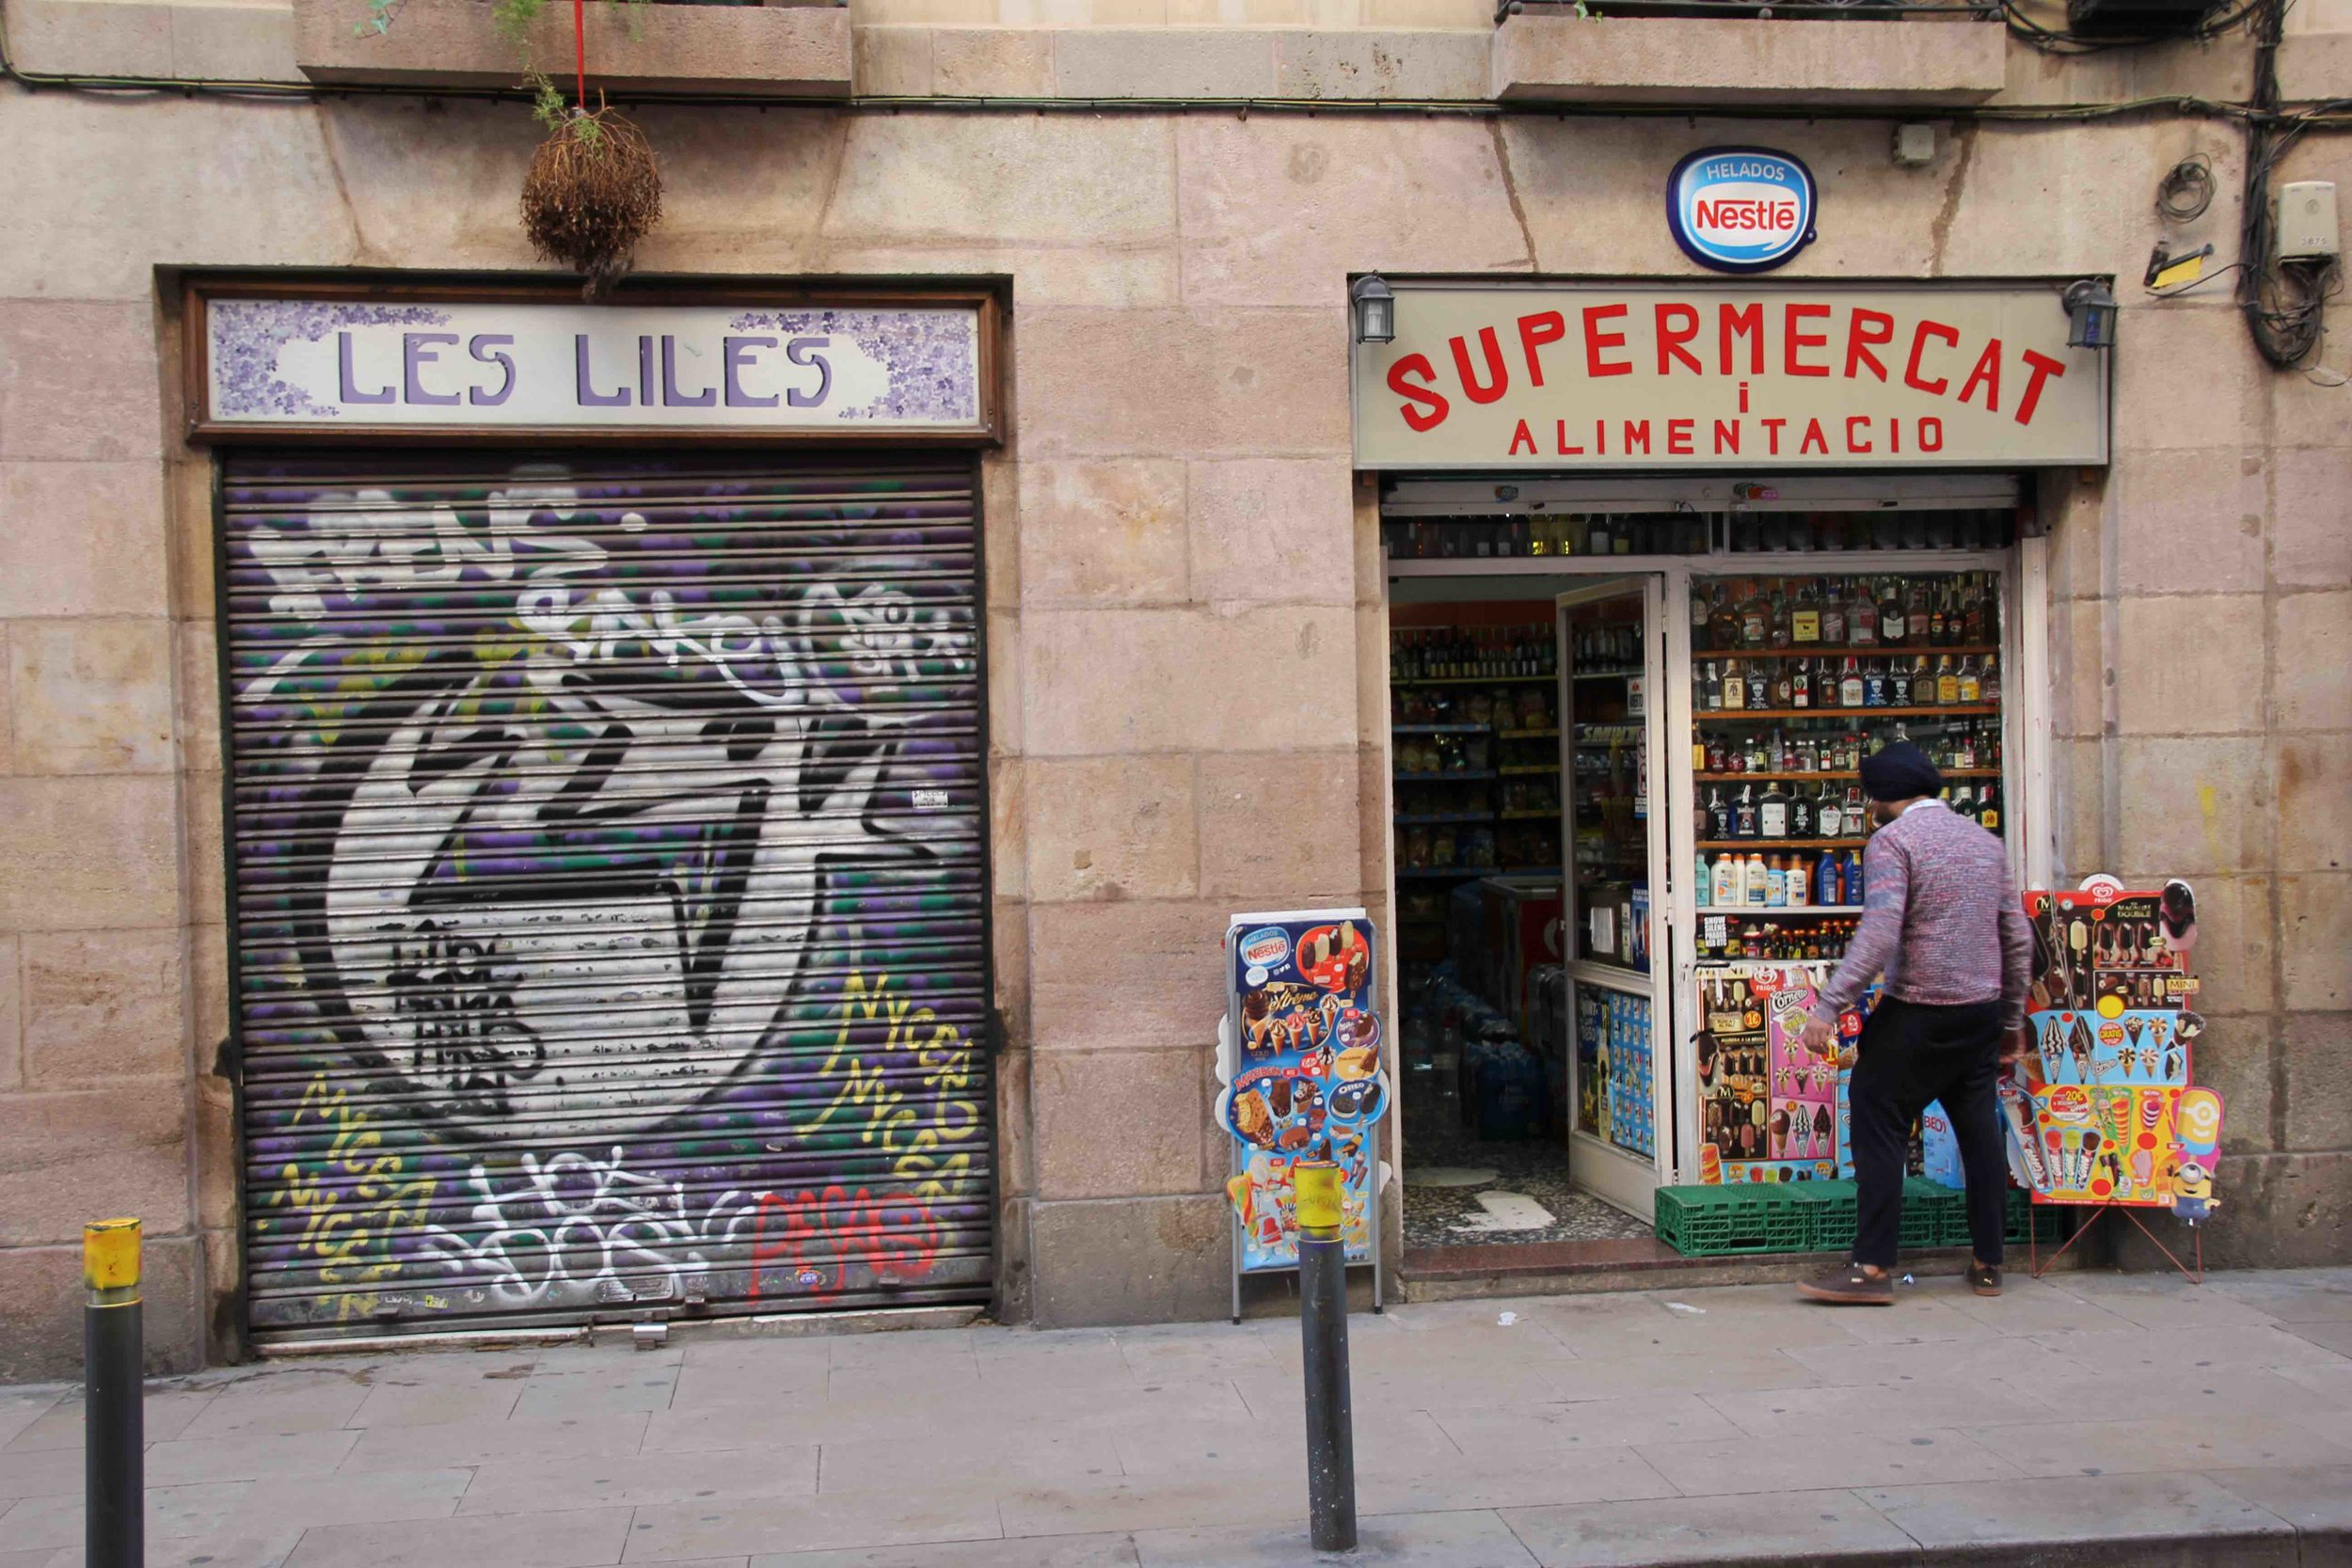 A supermercat in Barcelona run by a Sikh, and next to it a work of graffiti on the shutter of the shop which is very typical of Barcelona street art.